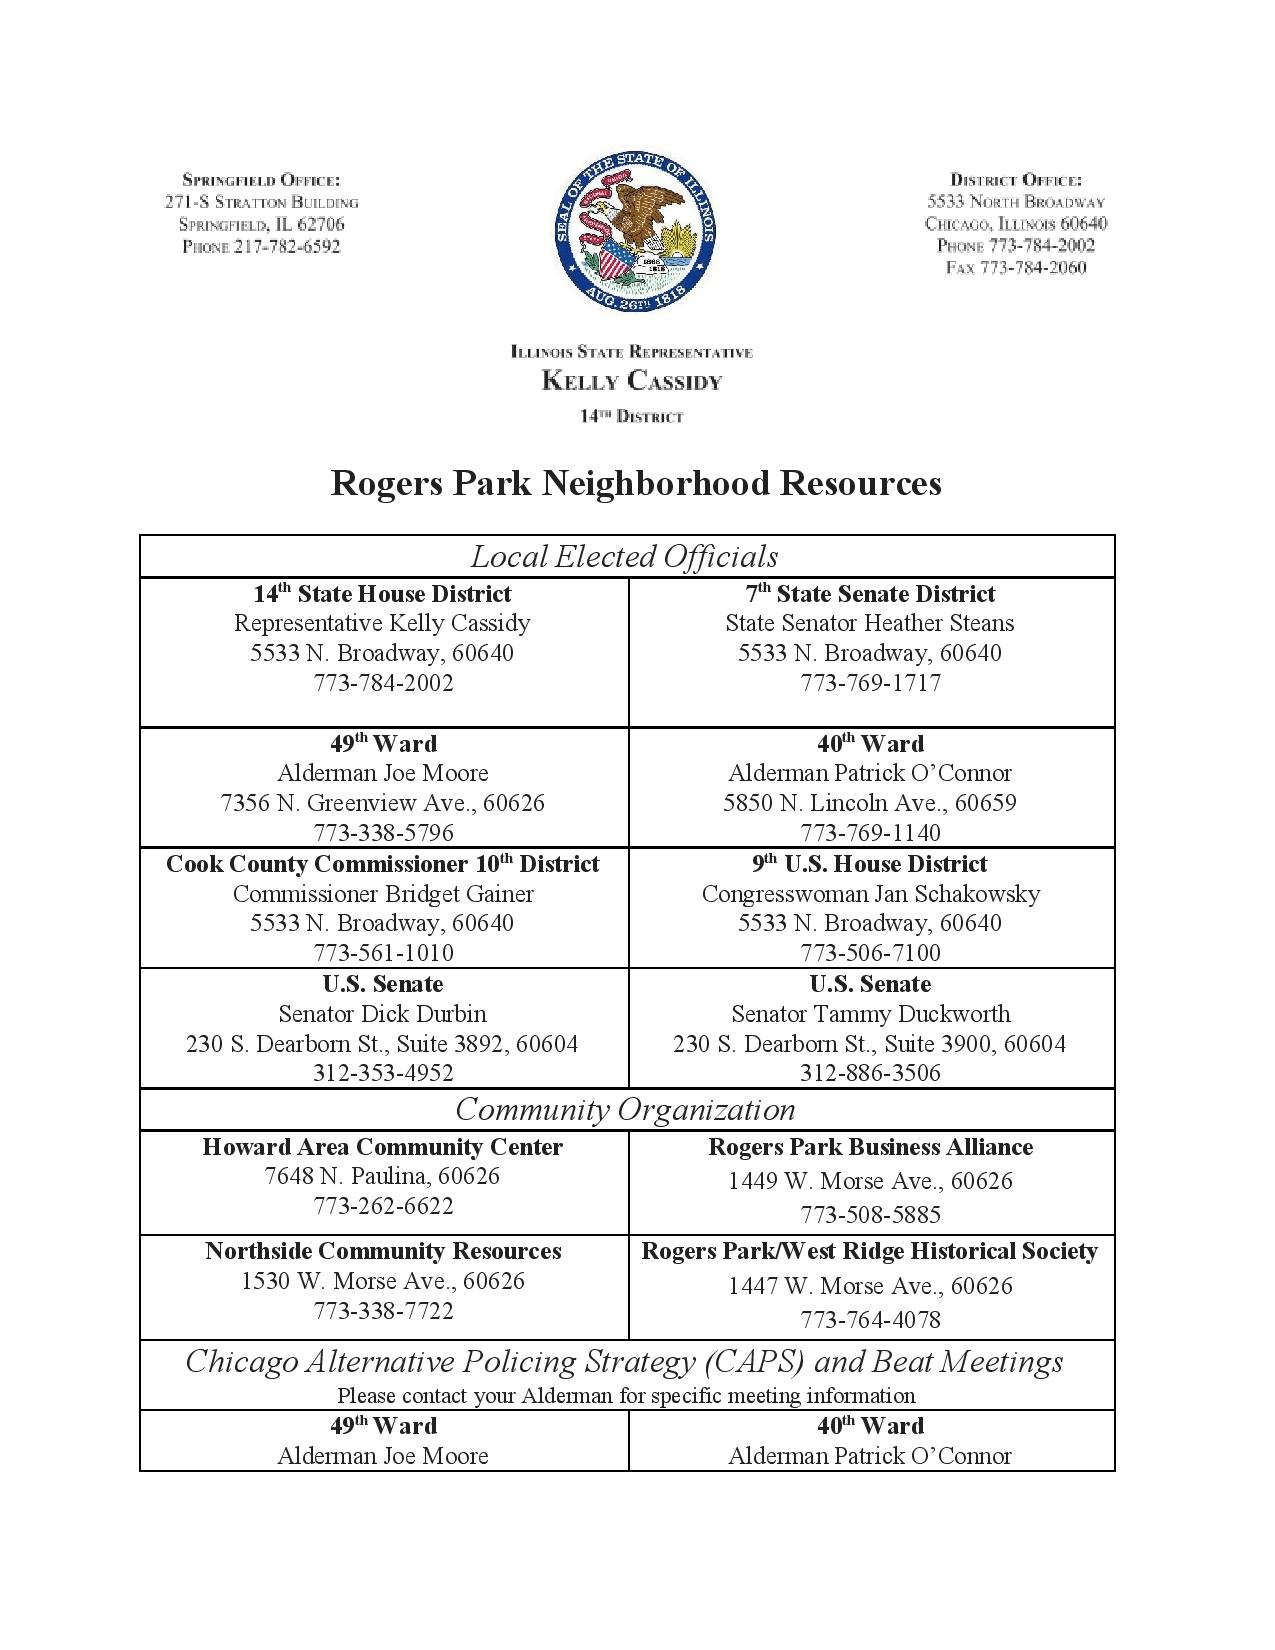 Rogers Park Neighborhood Resources-page-001.jpg